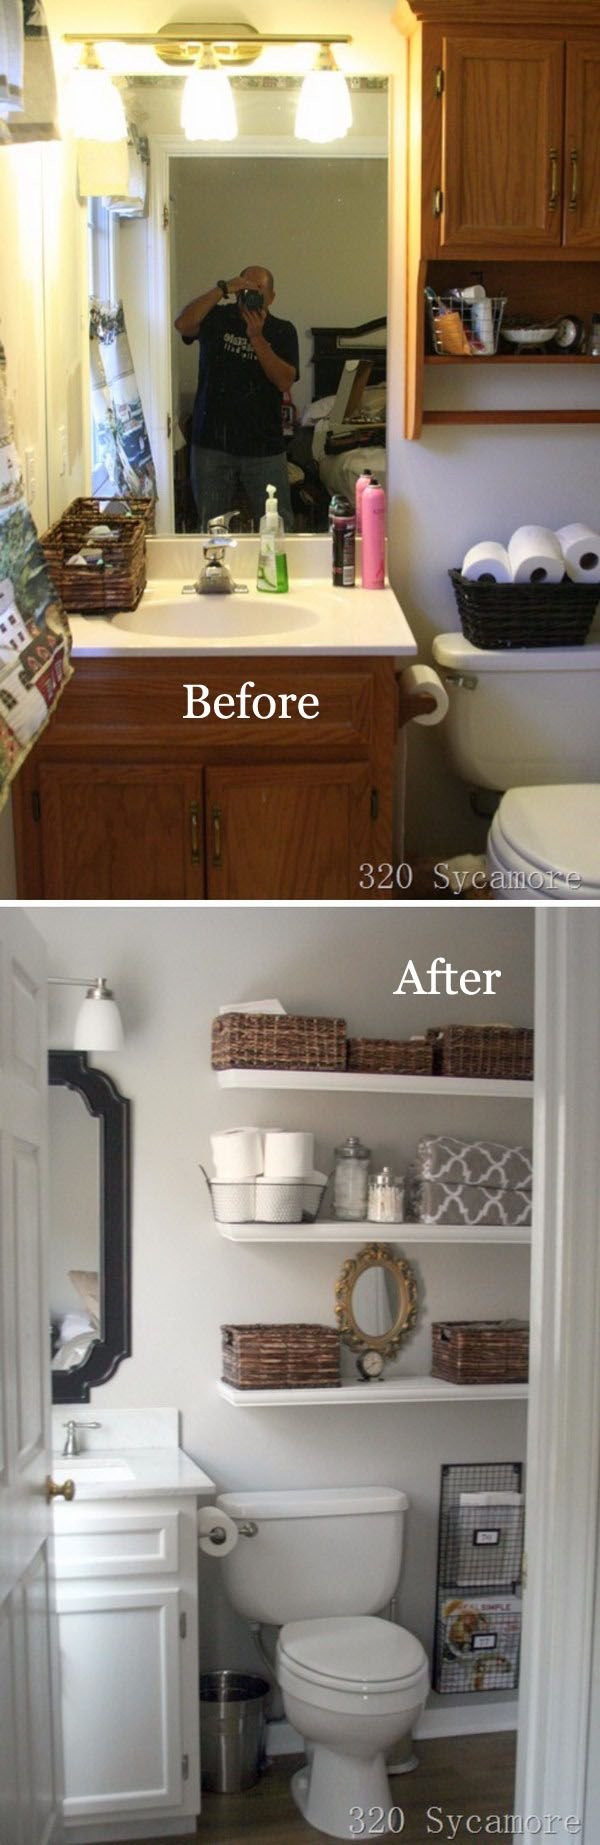 Lots Of Simple And Impactful Bathroom Updates!